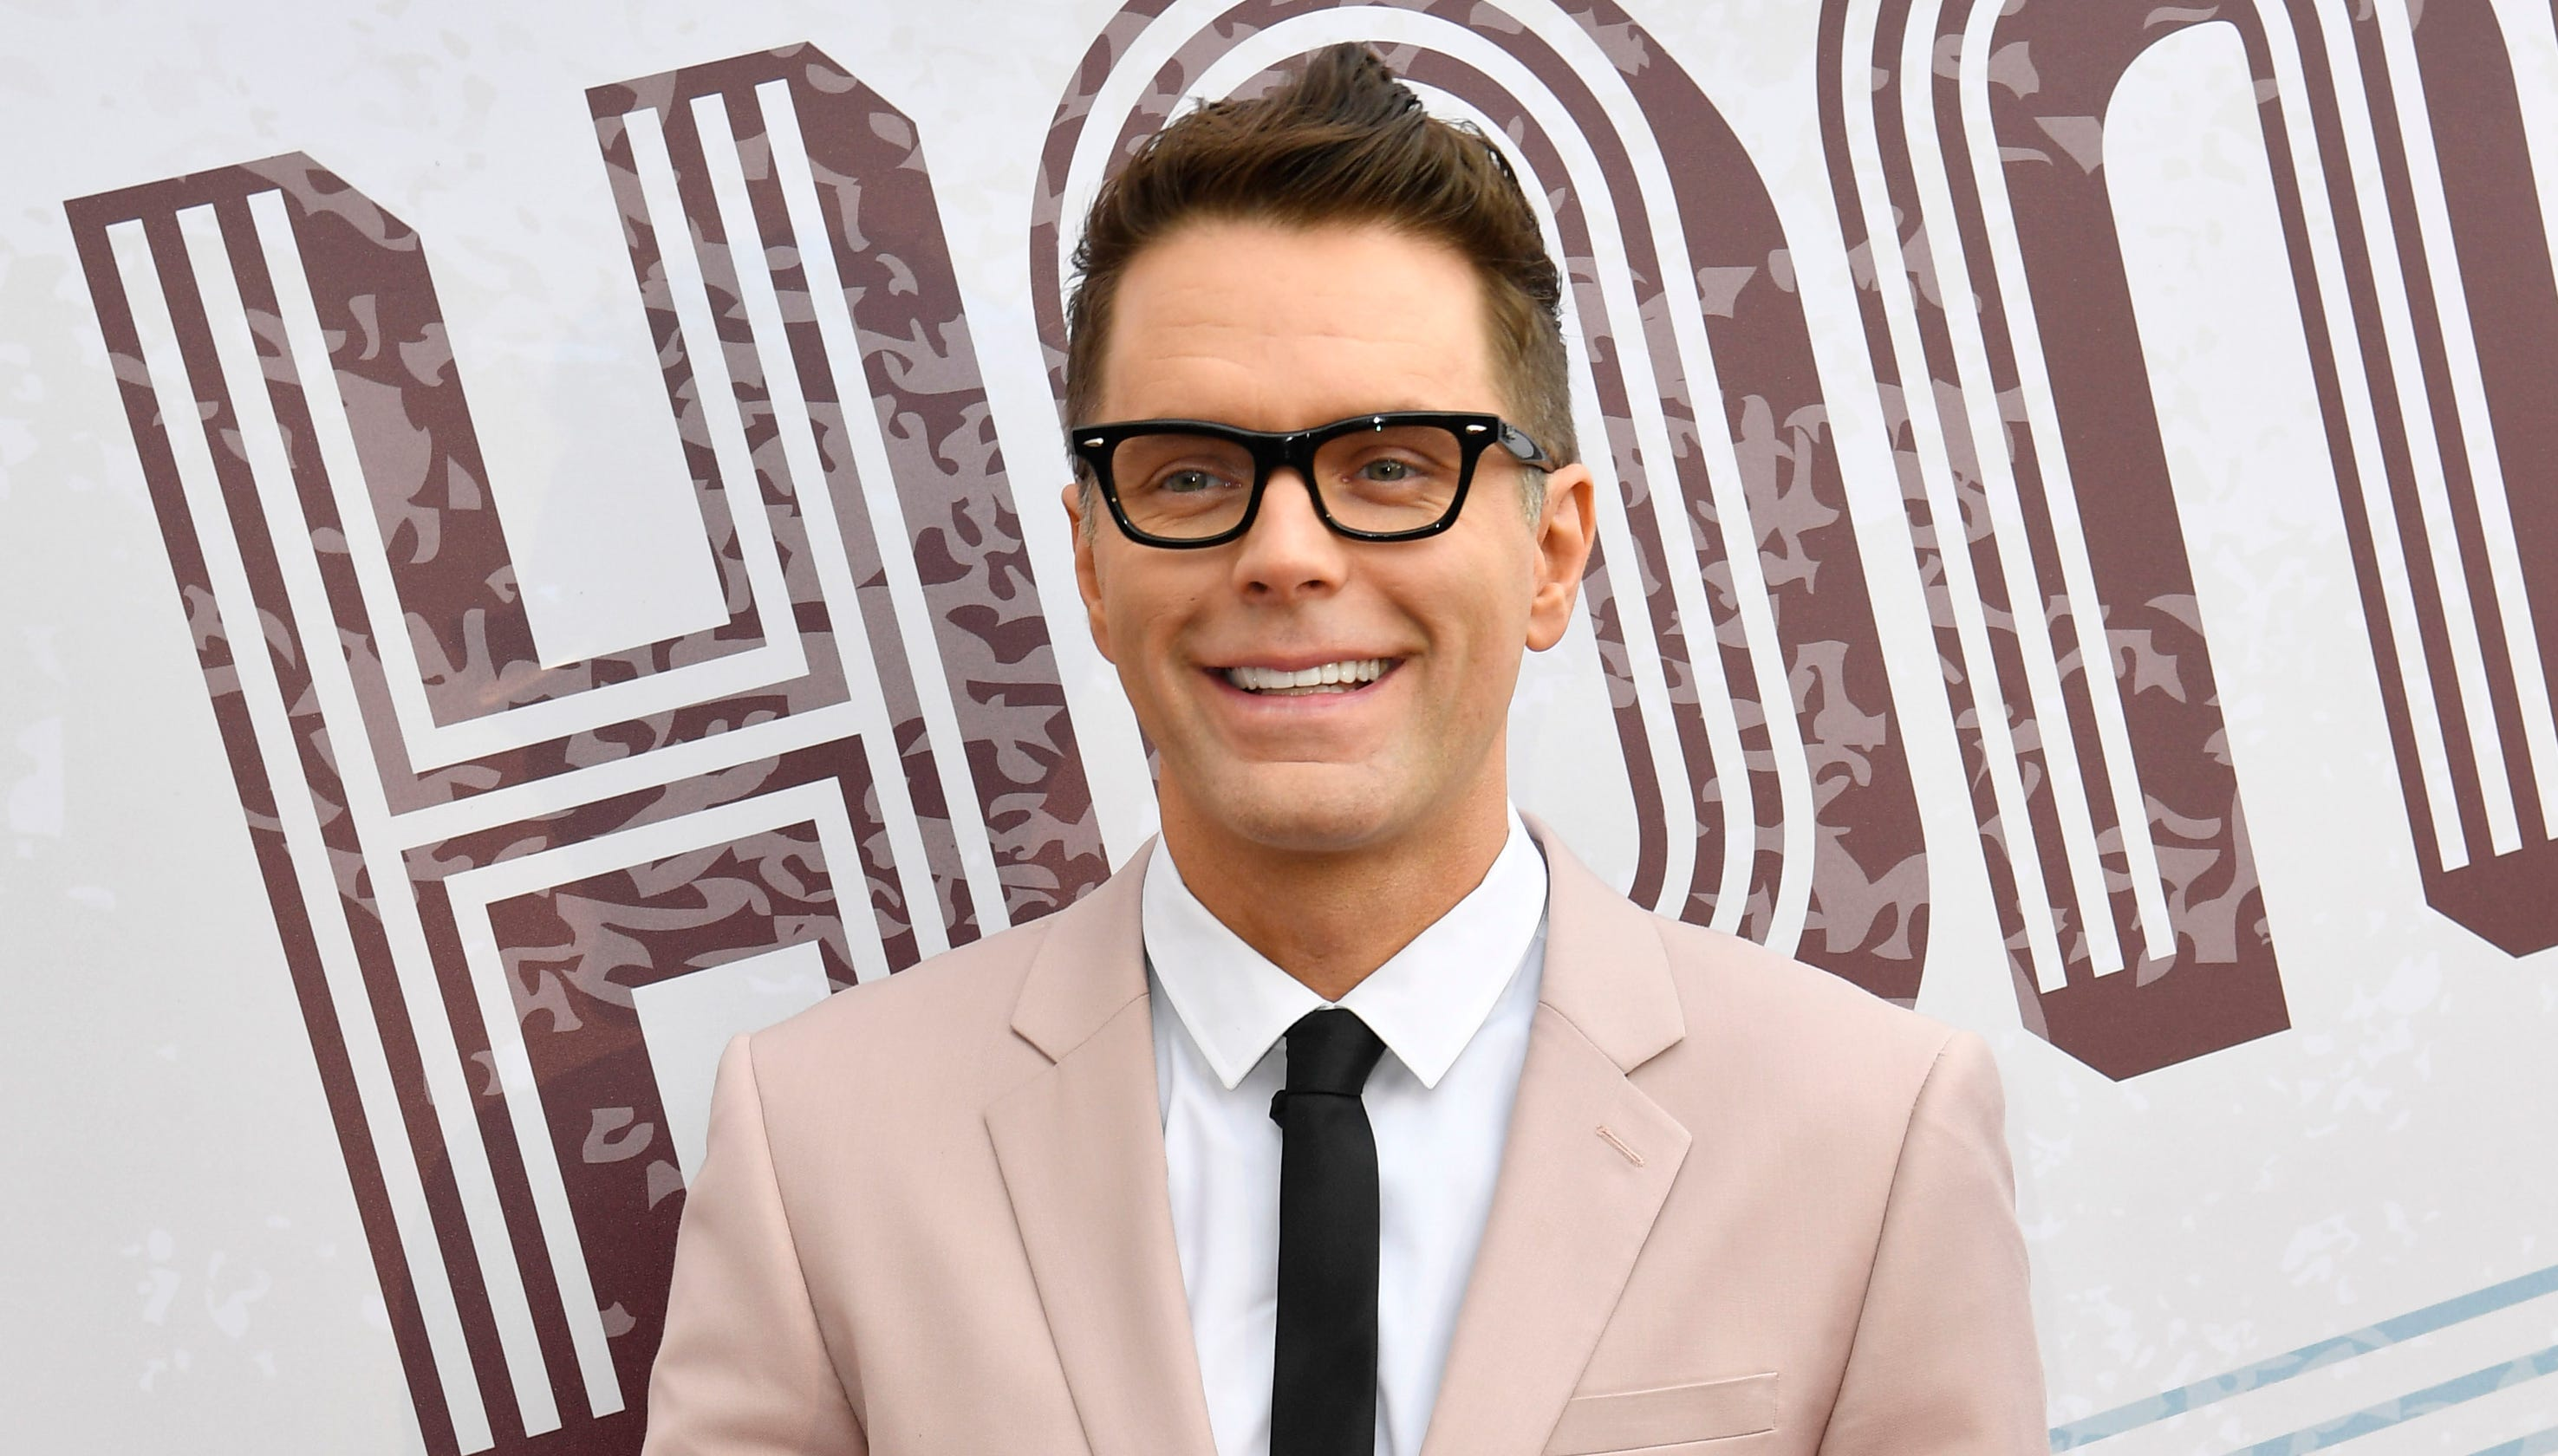 Cast of Dancing with the Stars 27 includes Bobby Bones, John Schneider